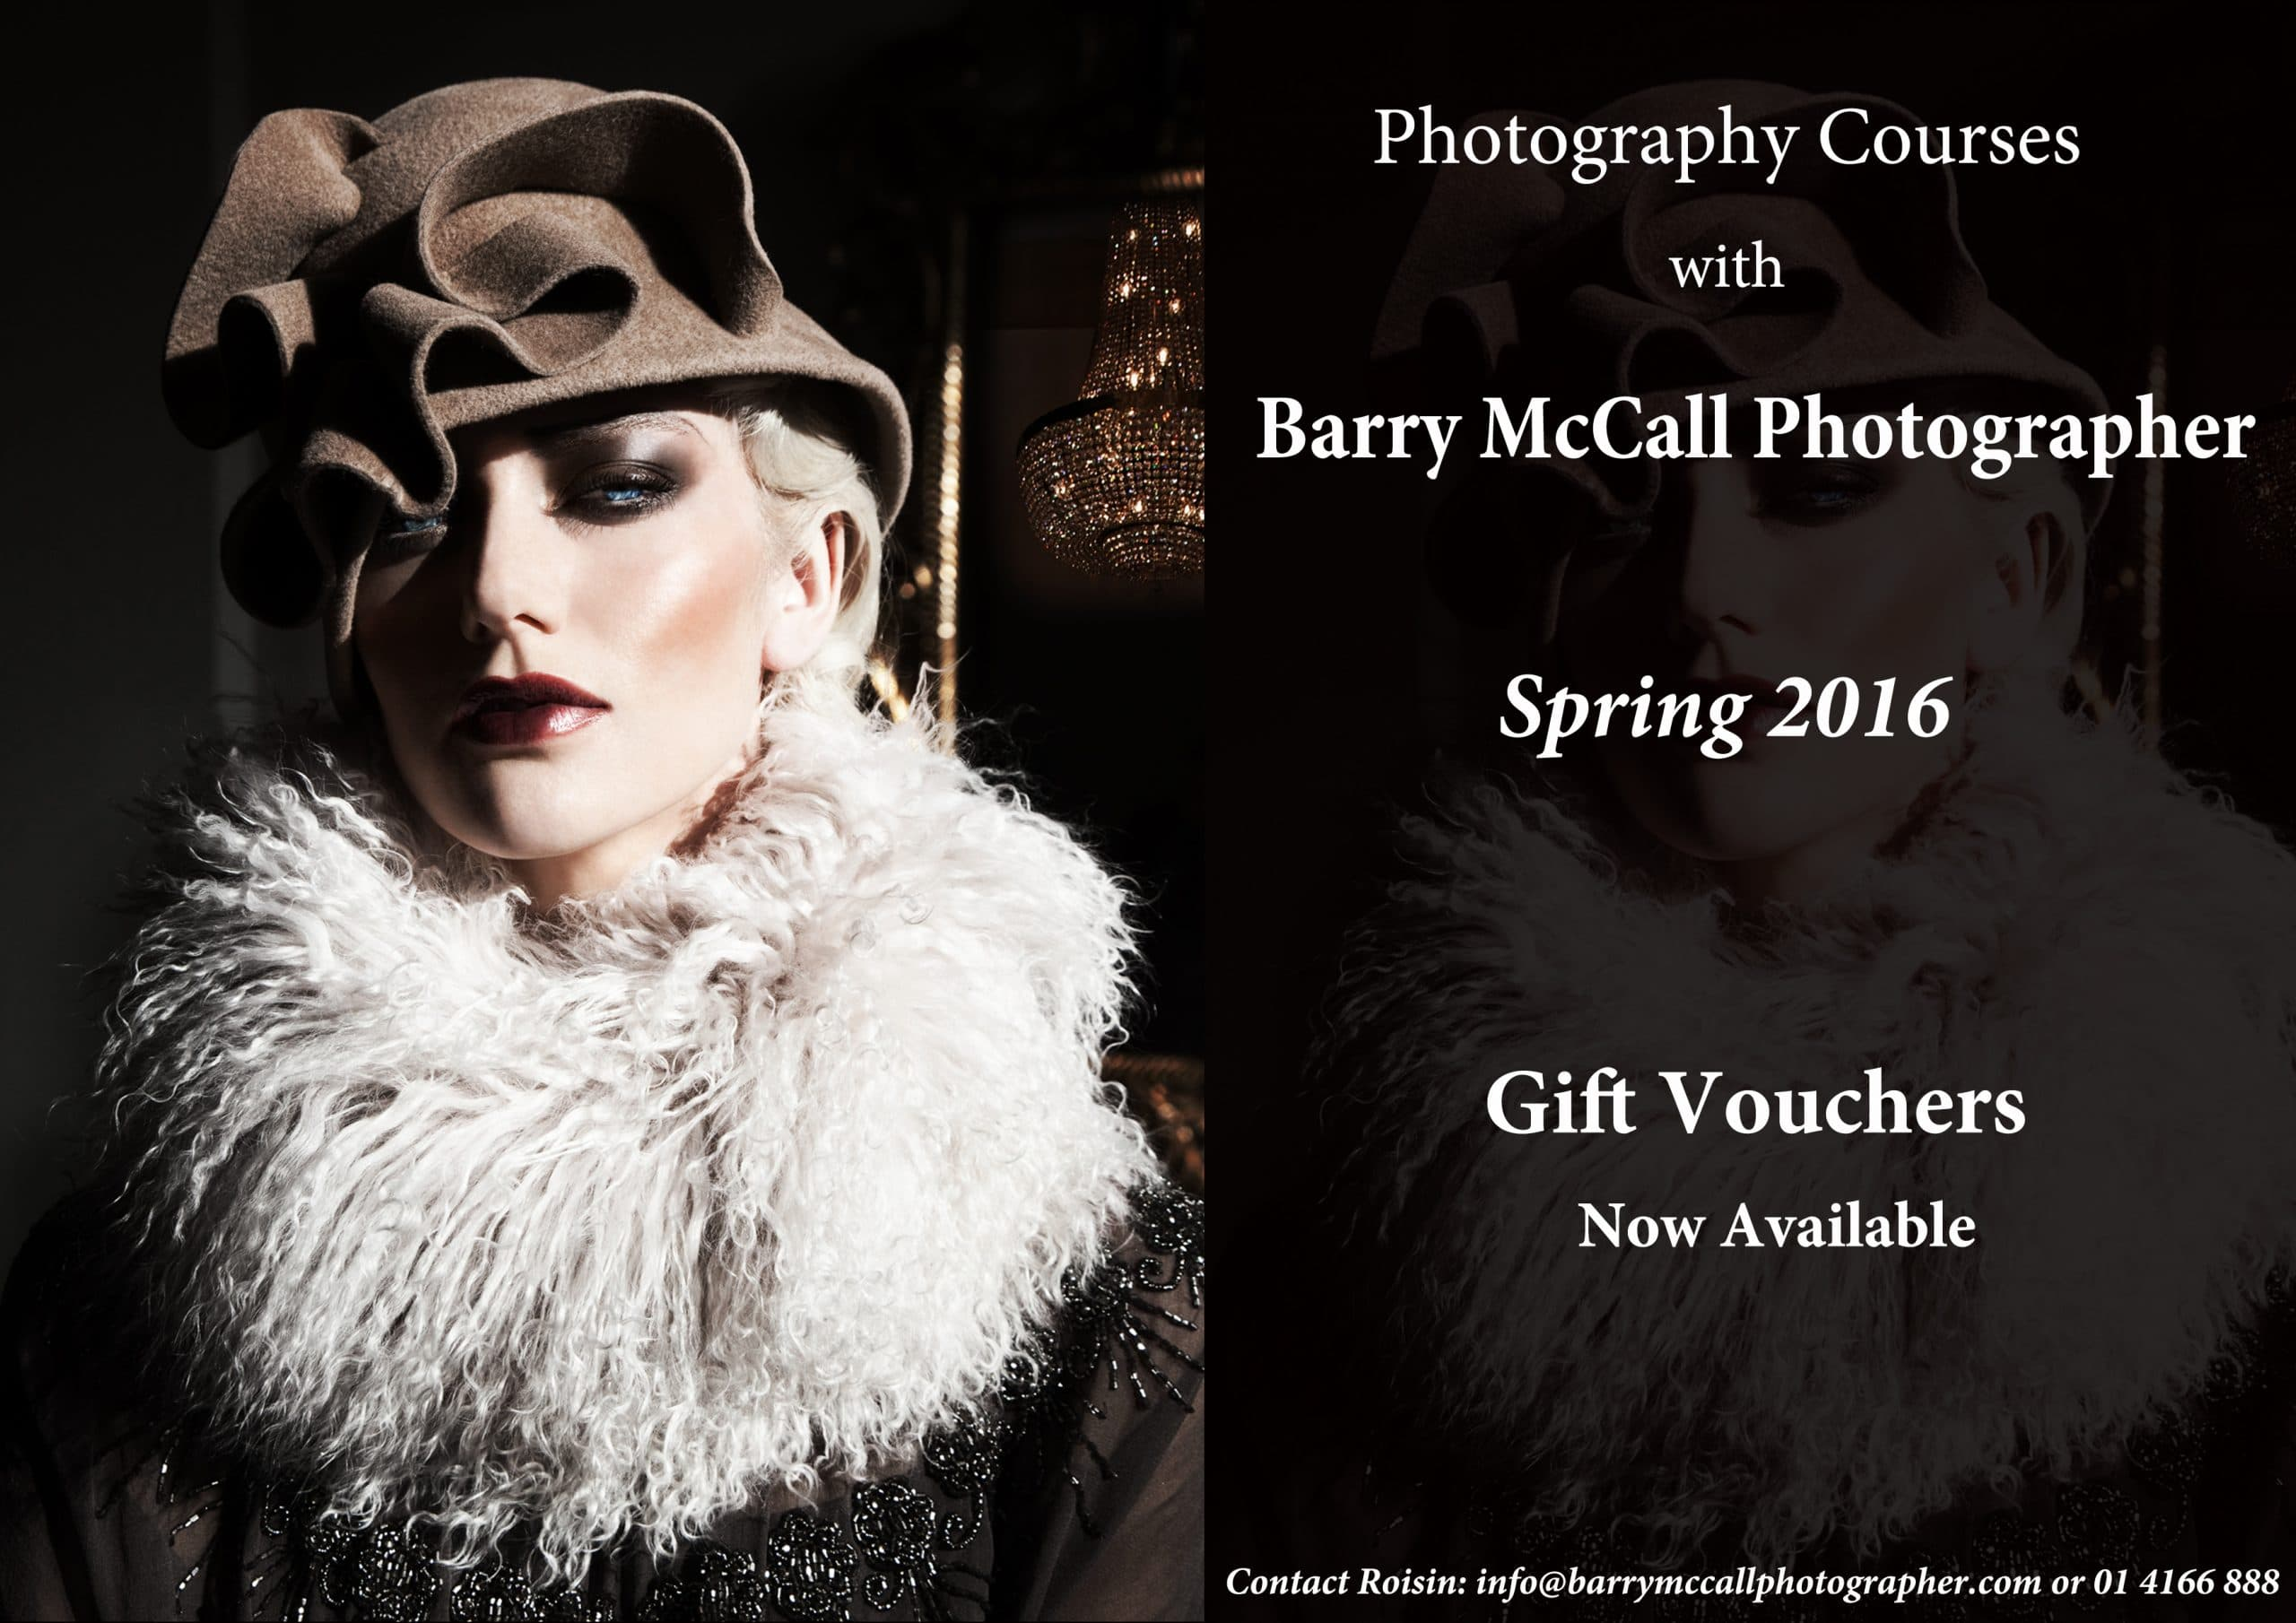 Photography Courses with Barry McCall